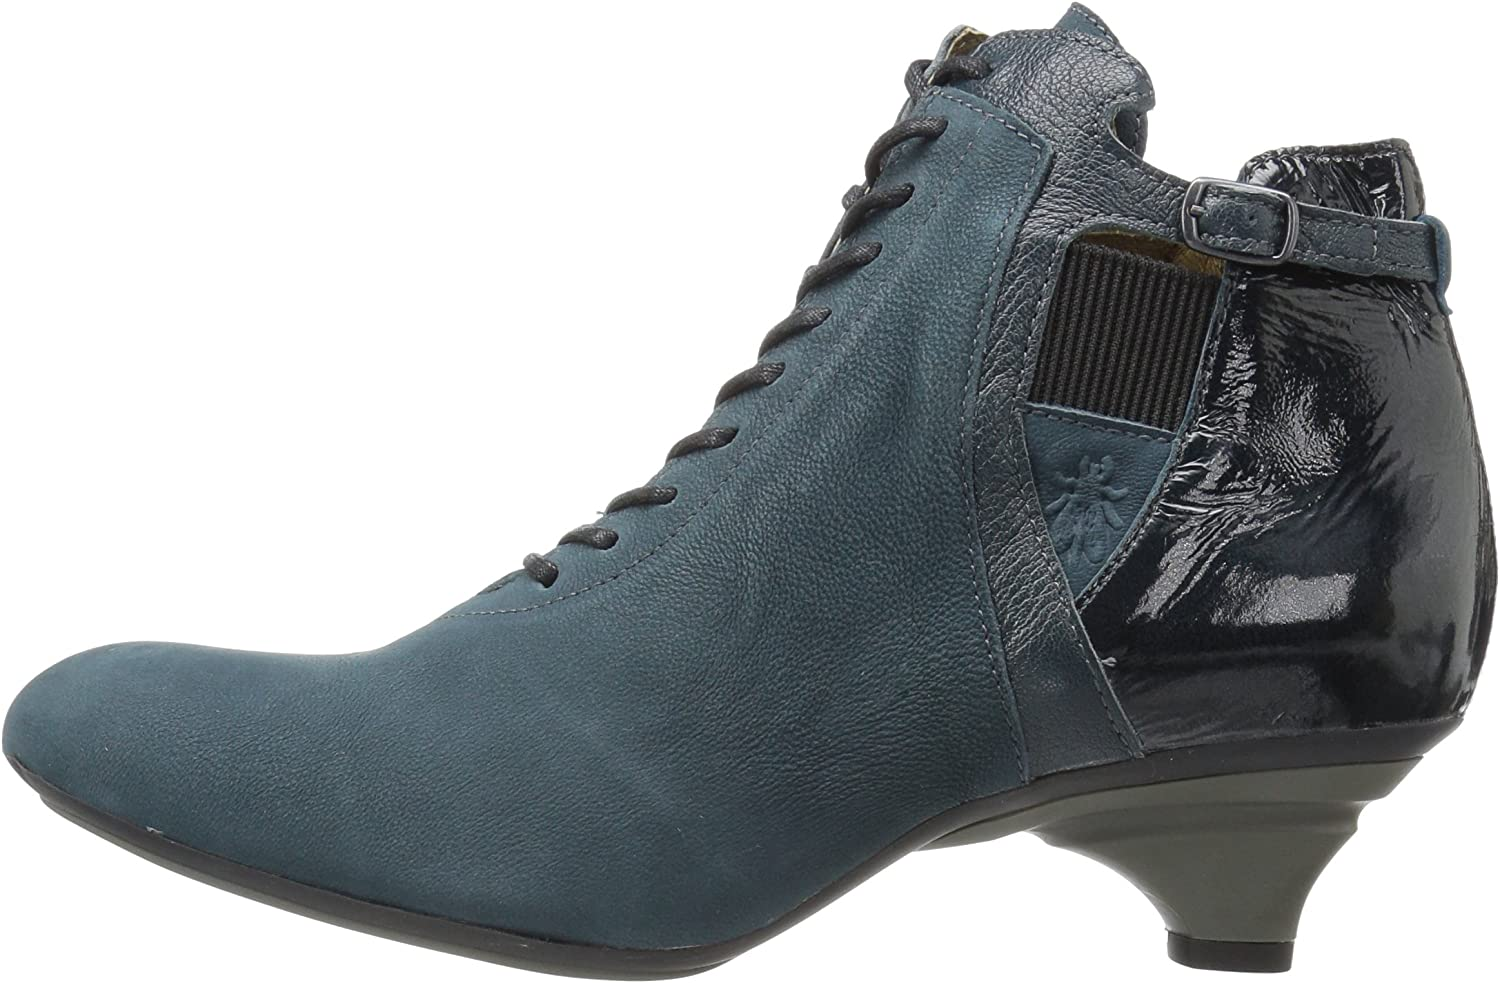 Fly London Bugs117fly Bottes Femme